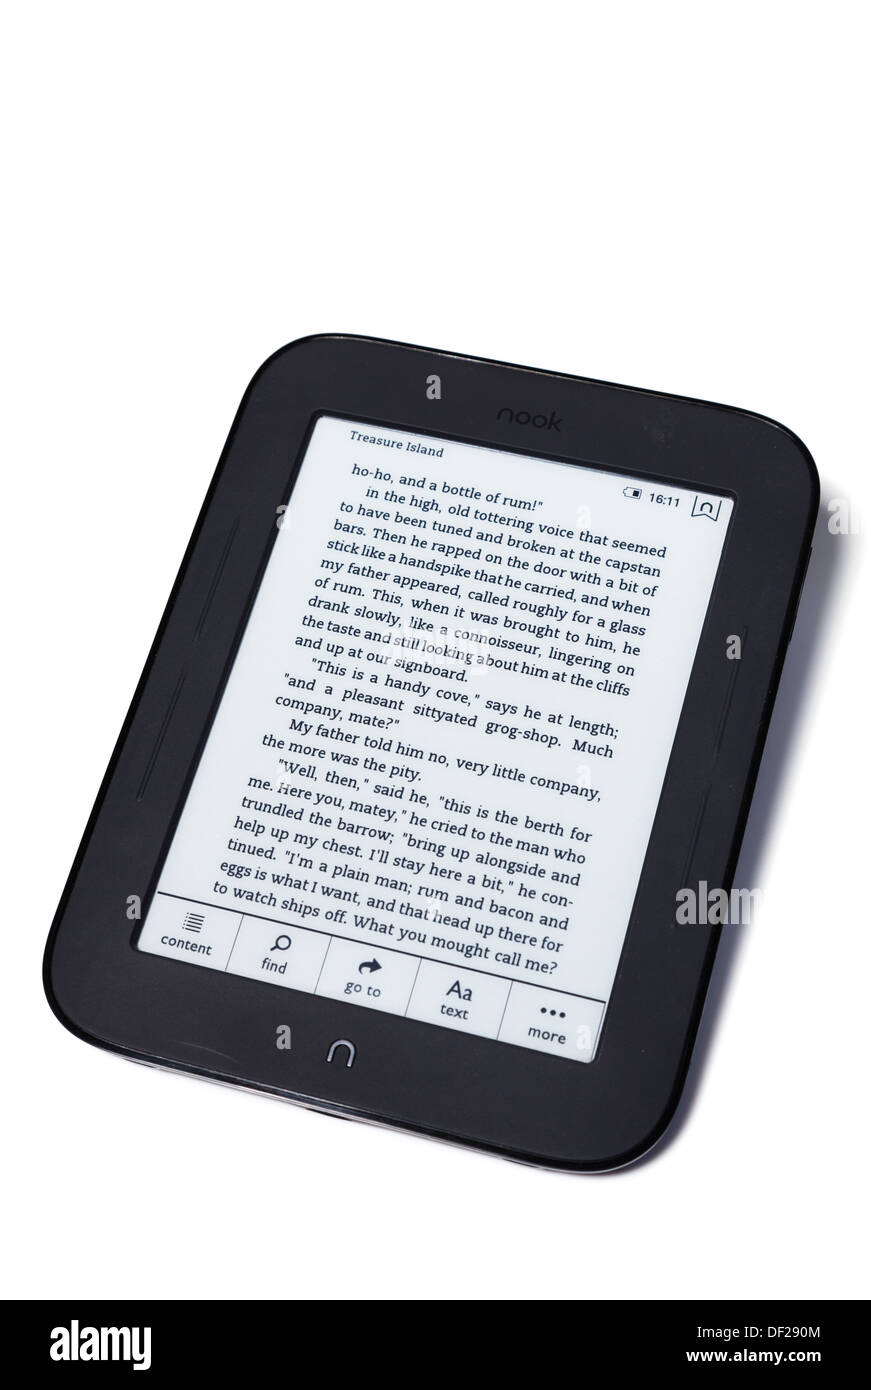 studio nook ereader on white with content find goto menu. - Stock Image